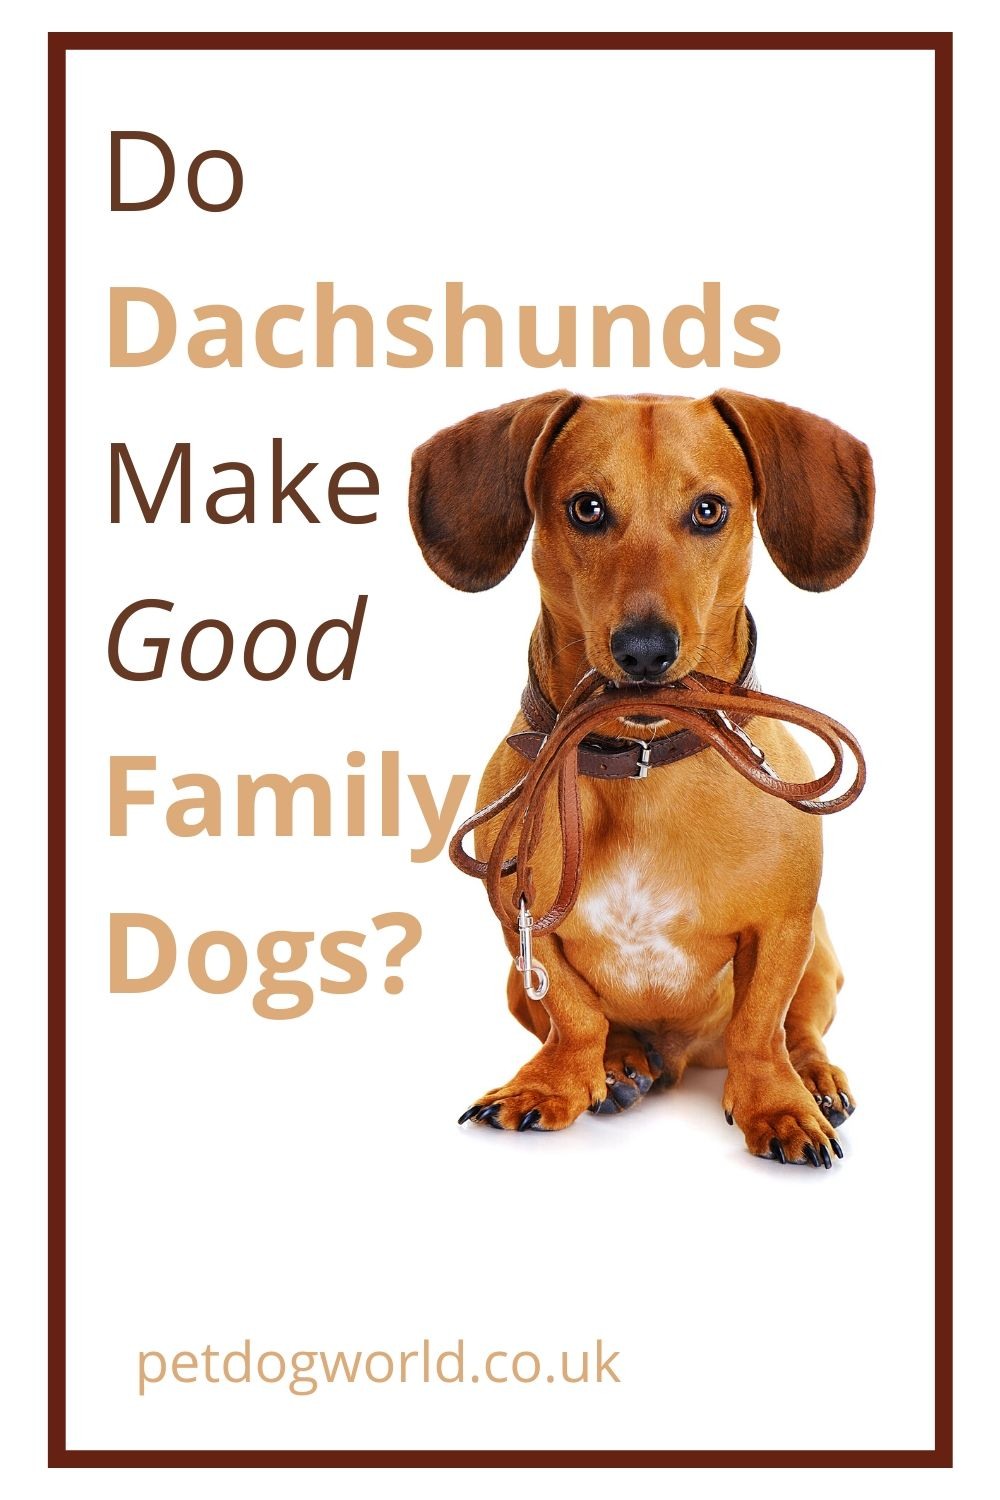 Do Dachshunds Make Good Family Dogs? Read this if you're thinking of getting one!